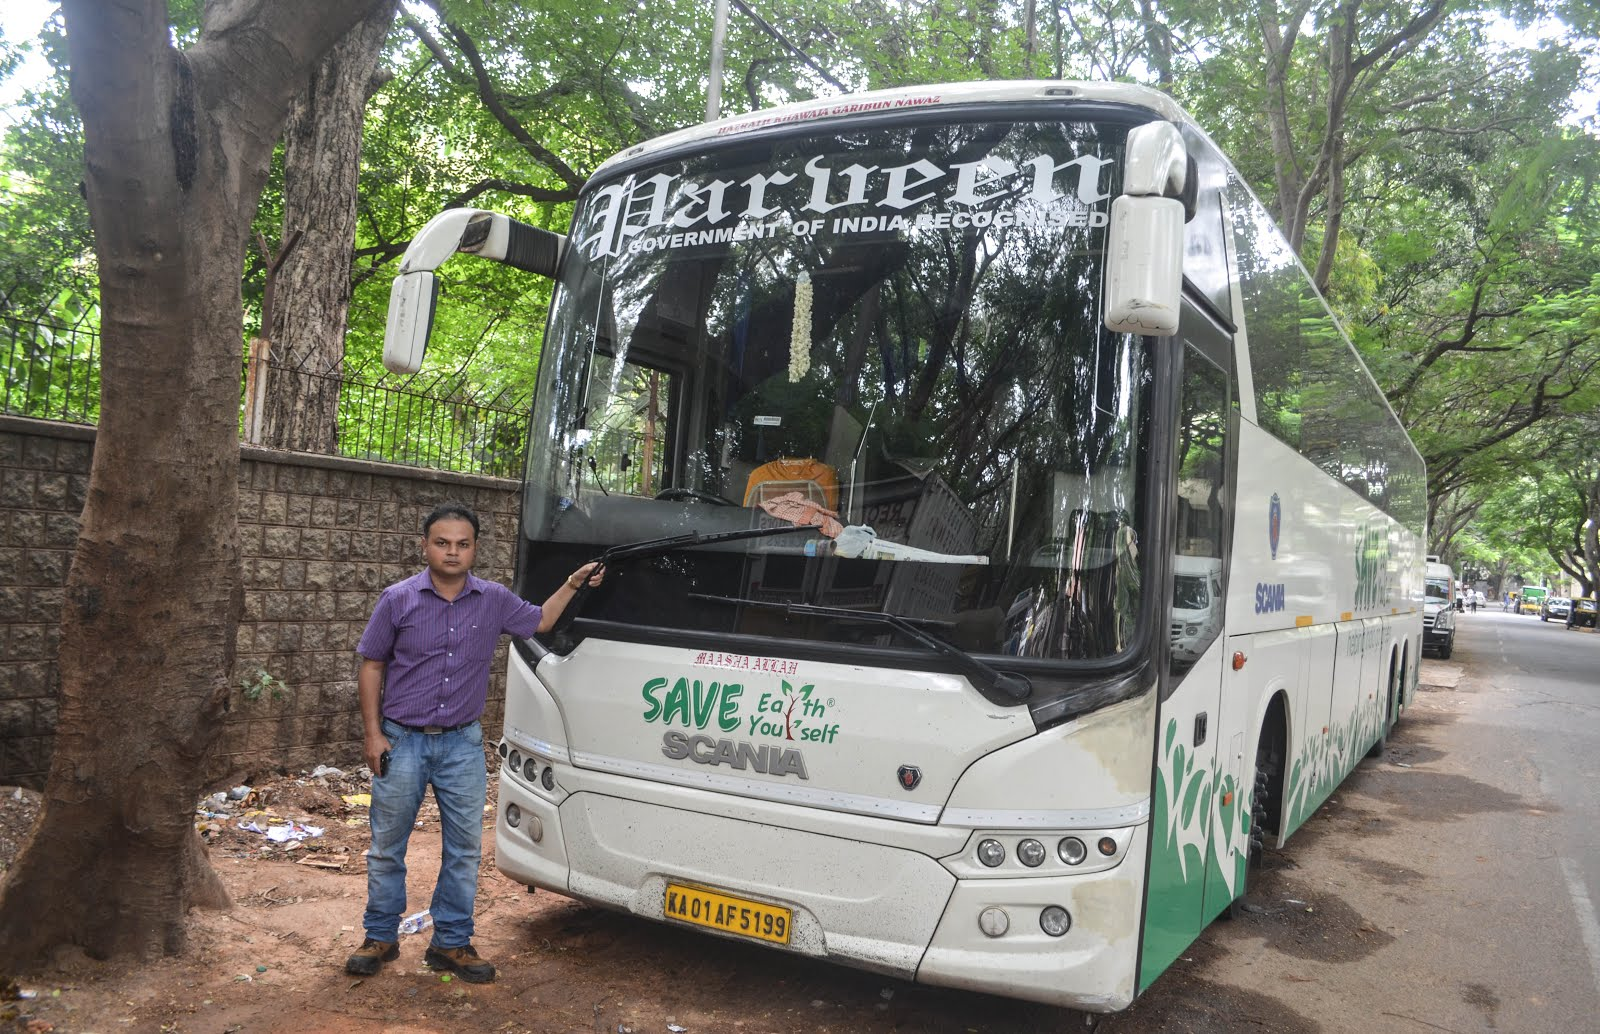 Journey Review Srs Scania Metrolink Hd Multiaxle Belgaum Mumbai Irizar Wiring Diagram Parveen